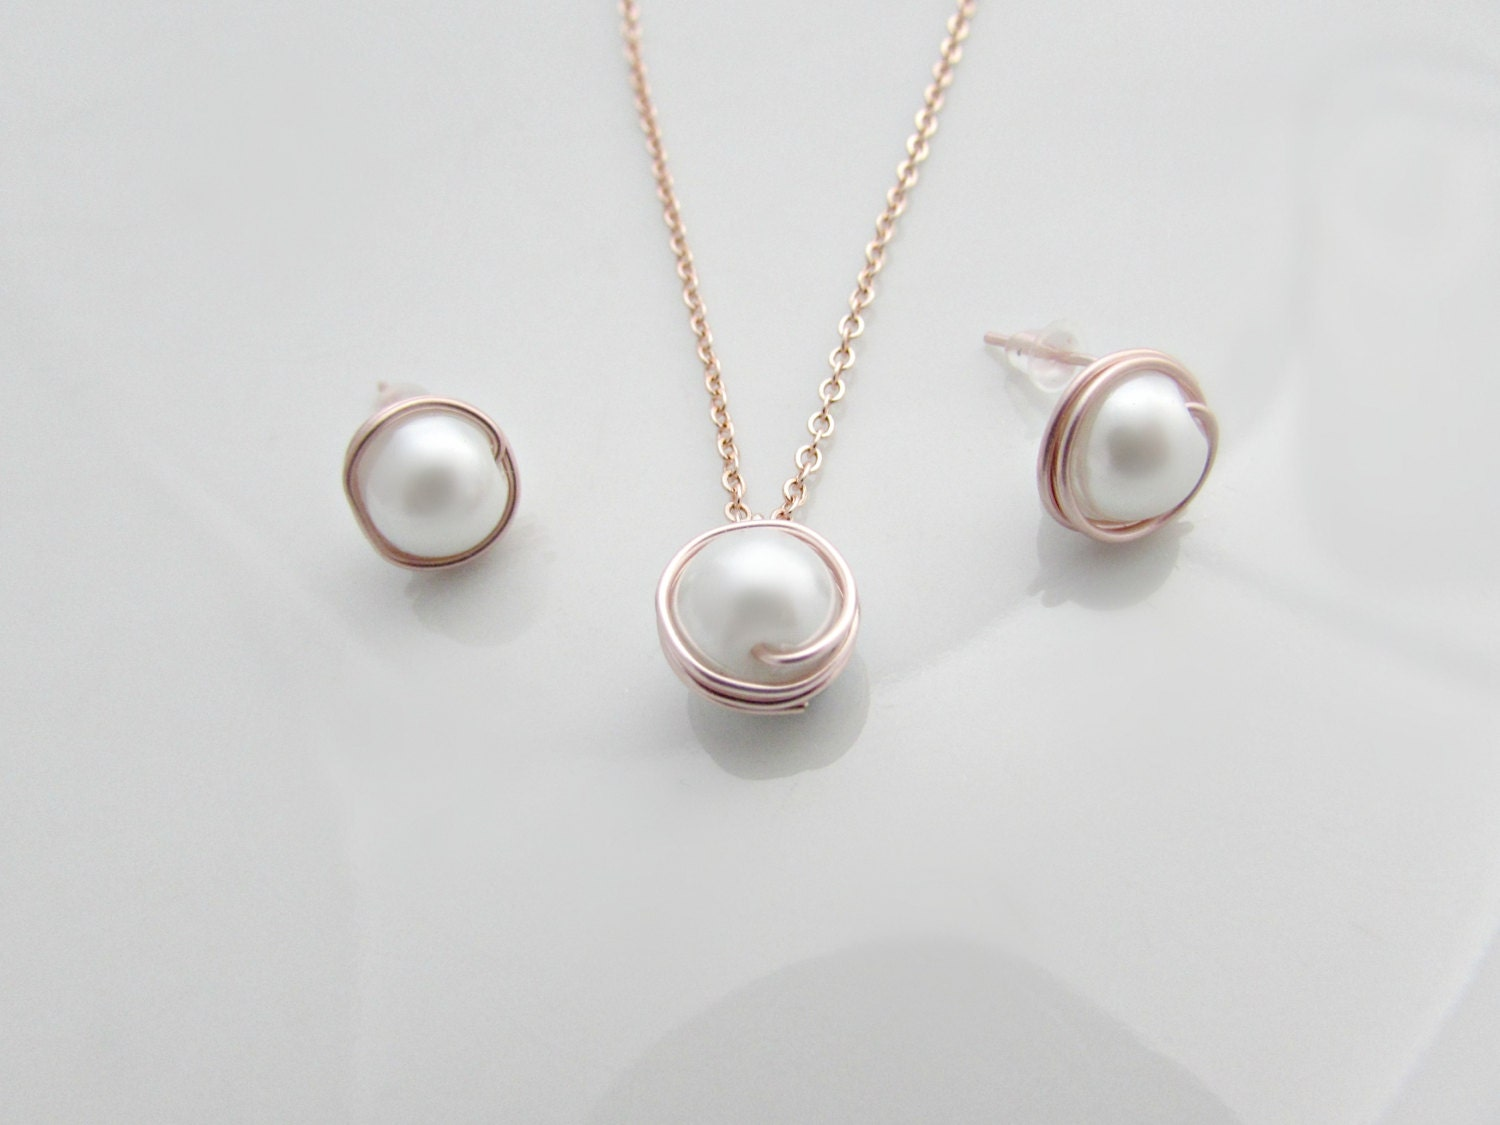 Pearl Necklace and Earring Set Rose Gold Pearl Necklace Bridesmaid